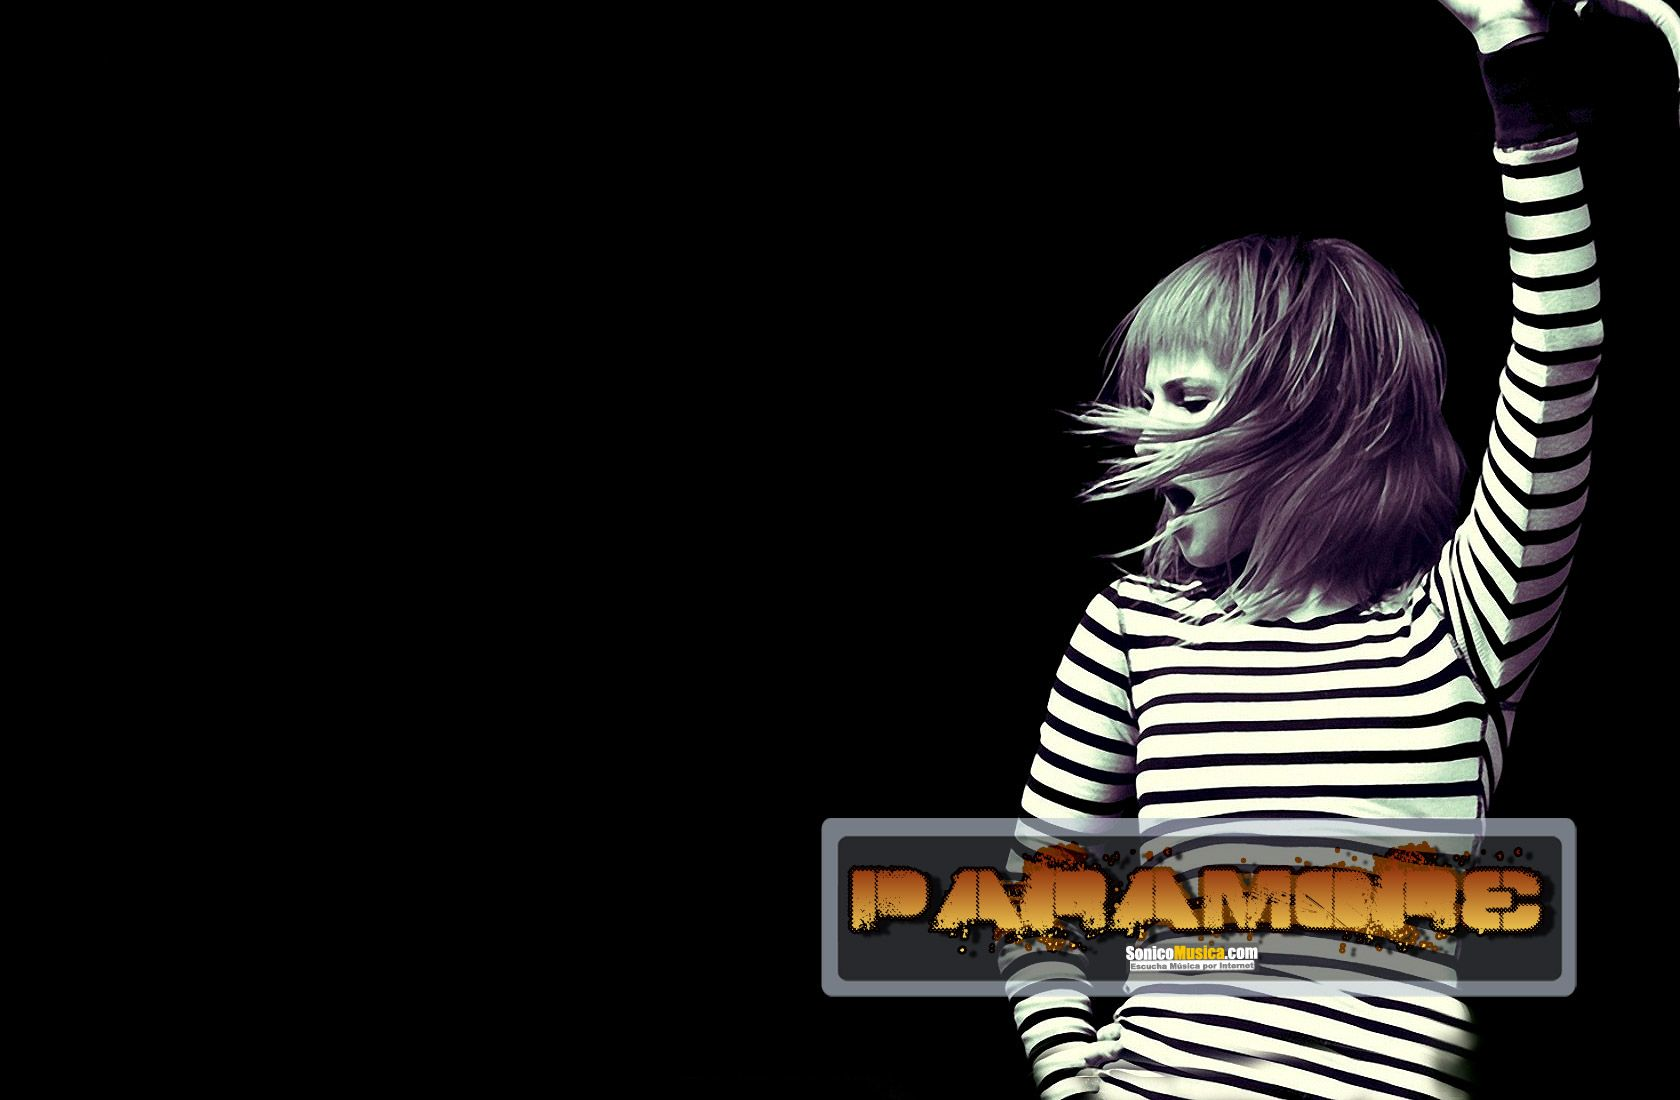 background de paramore